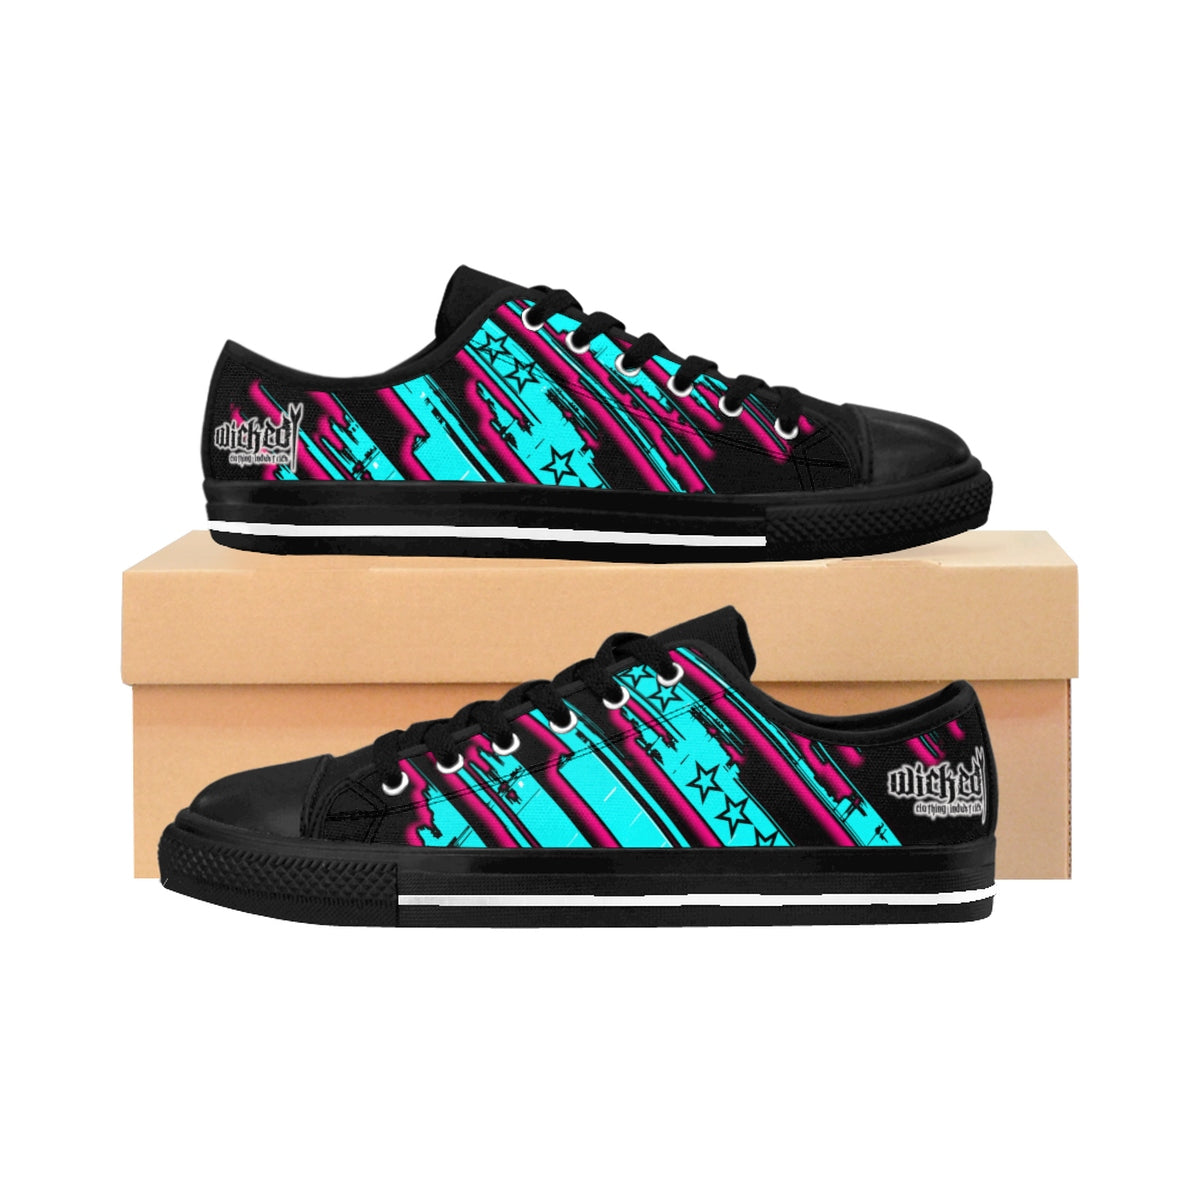 The Edge of Insanity / Teal/ Pink Black/ Women's Sneakers